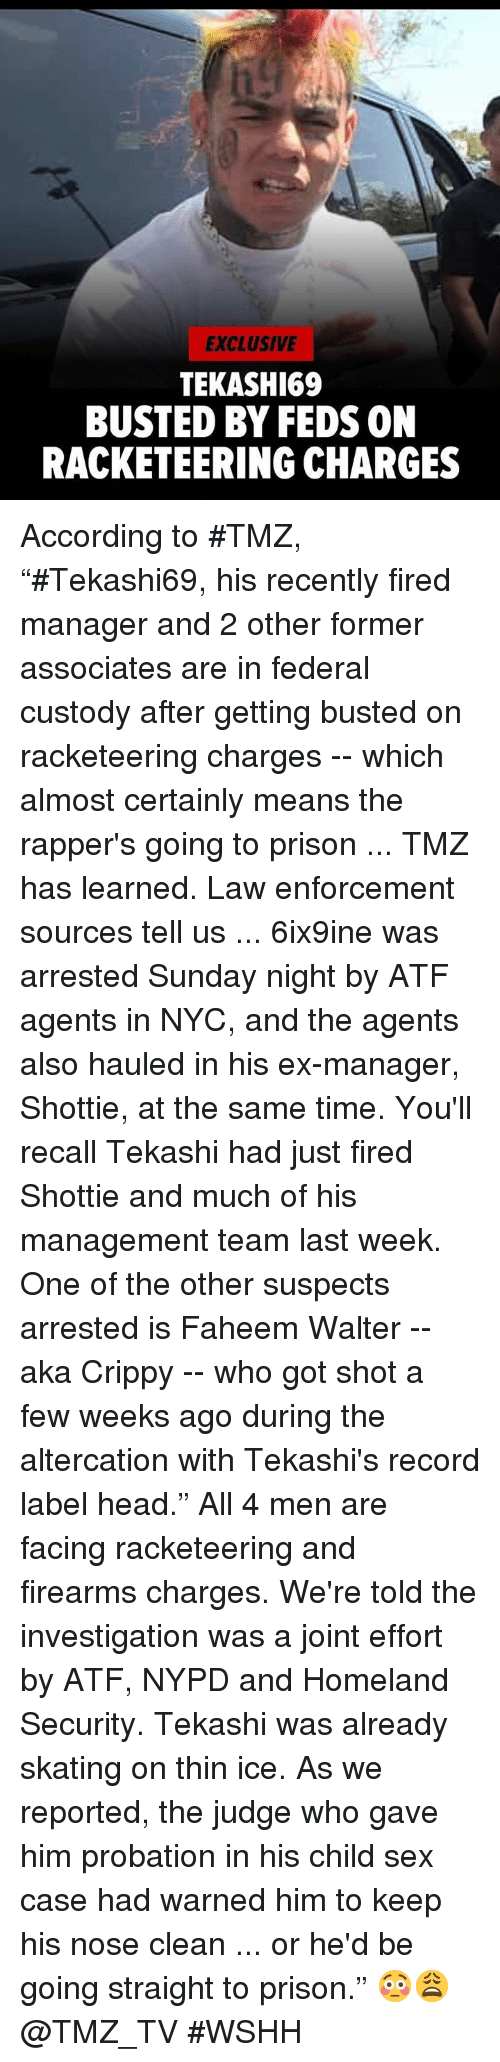 """Homeland: EXCLUSIVE  TEKASHI69  BUSTED BY FEDS ON  RACKETEERING CHARGES According to #TMZ, """"#Tekashi69, his recently fired manager and 2 other former associates are in federal custody after getting busted on racketeering charges -- which almost certainly means the rapper's going to prison ... TMZ has learned.  Law enforcement sources tell us ... 6ix9ine was arrested Sunday night by ATF agents in NYC, and the agents also hauled in his ex-manager, Shottie, at the same time. You'll recall Tekashi had just fired Shottie and much of his management team last week.  One of the other suspects arrested is Faheem Walter -- aka Crippy -- who got shot a few weeks ago during the altercation with Tekashi's record label head."""" All 4 men are facing racketeering and firearms charges. We're told the investigation was a joint effort by ATF, NYPD and Homeland Security.  Tekashi was already skating on thin ice. As we reported, the judge who gave him probation in his child sex case had warned him to keep his nose clean ... or he'd be going straight to prison."""" 😳😩 @TMZ_TV #WSHH"""